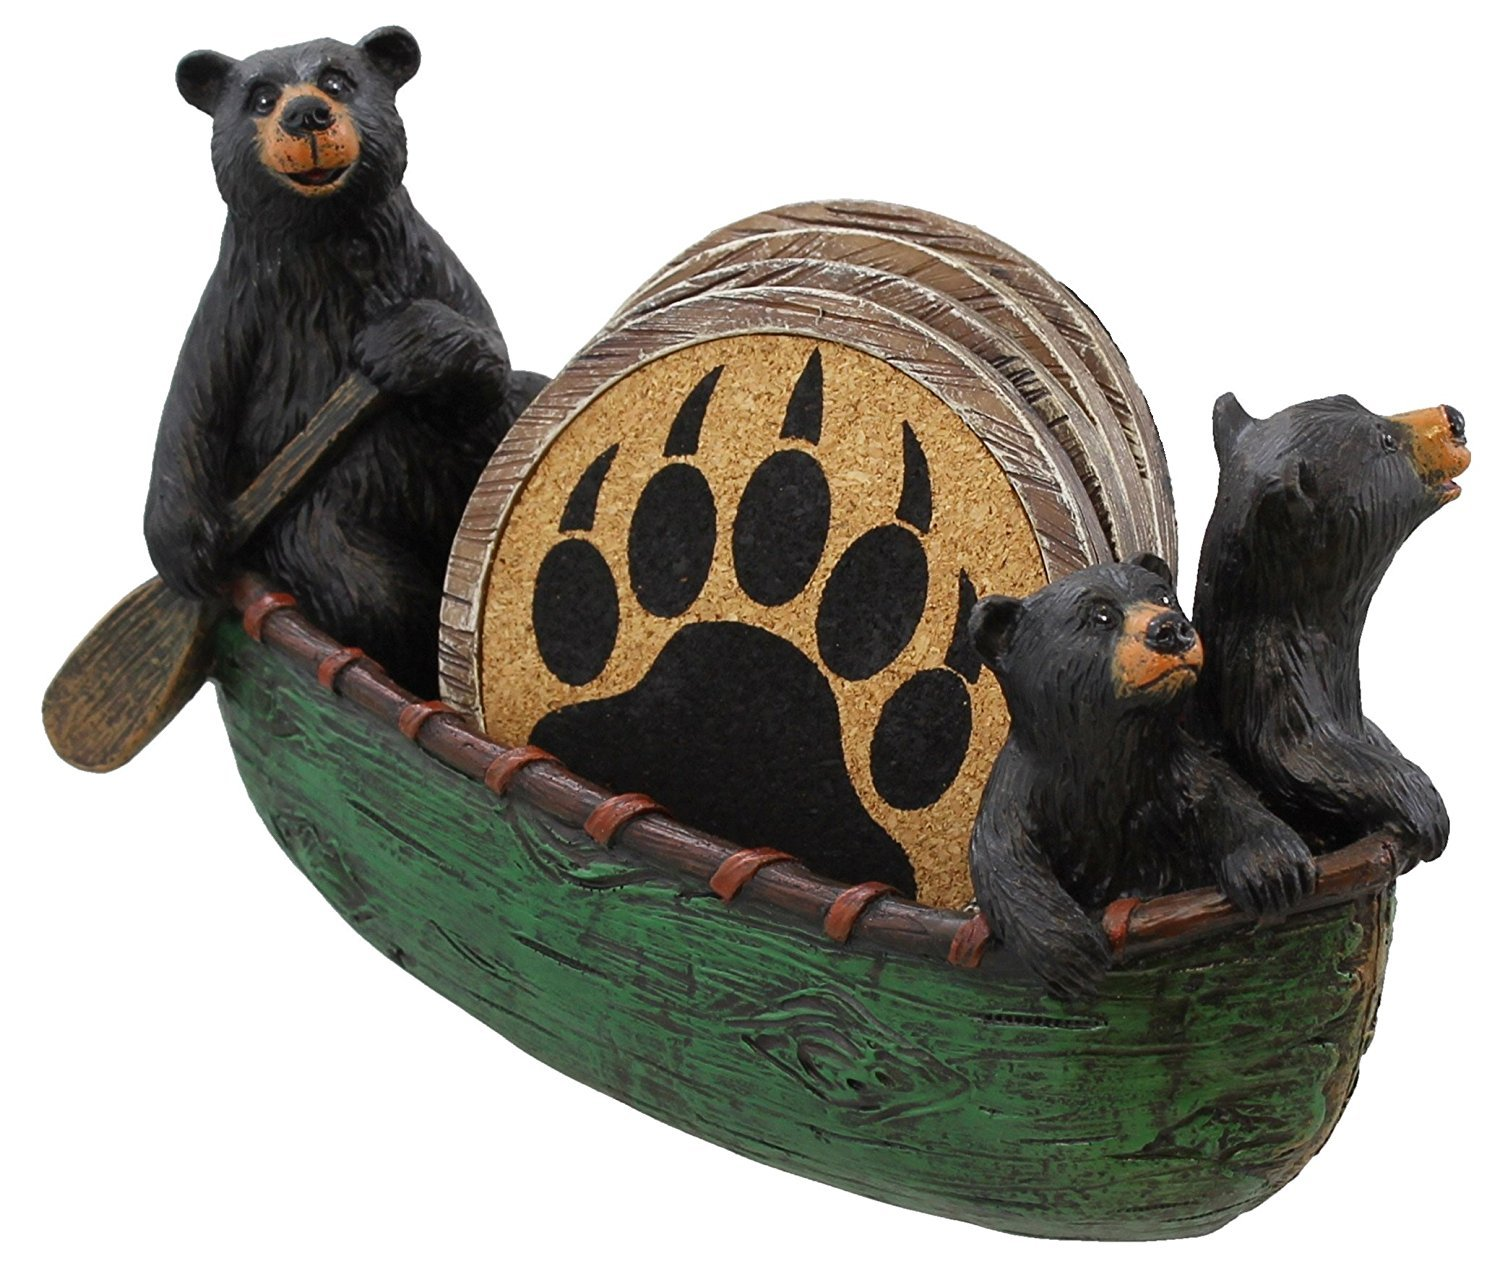 3 Black Bears Canoeing Coaster Set - 4 Coasters Rustic Cabin Green Canoe Cub Decor